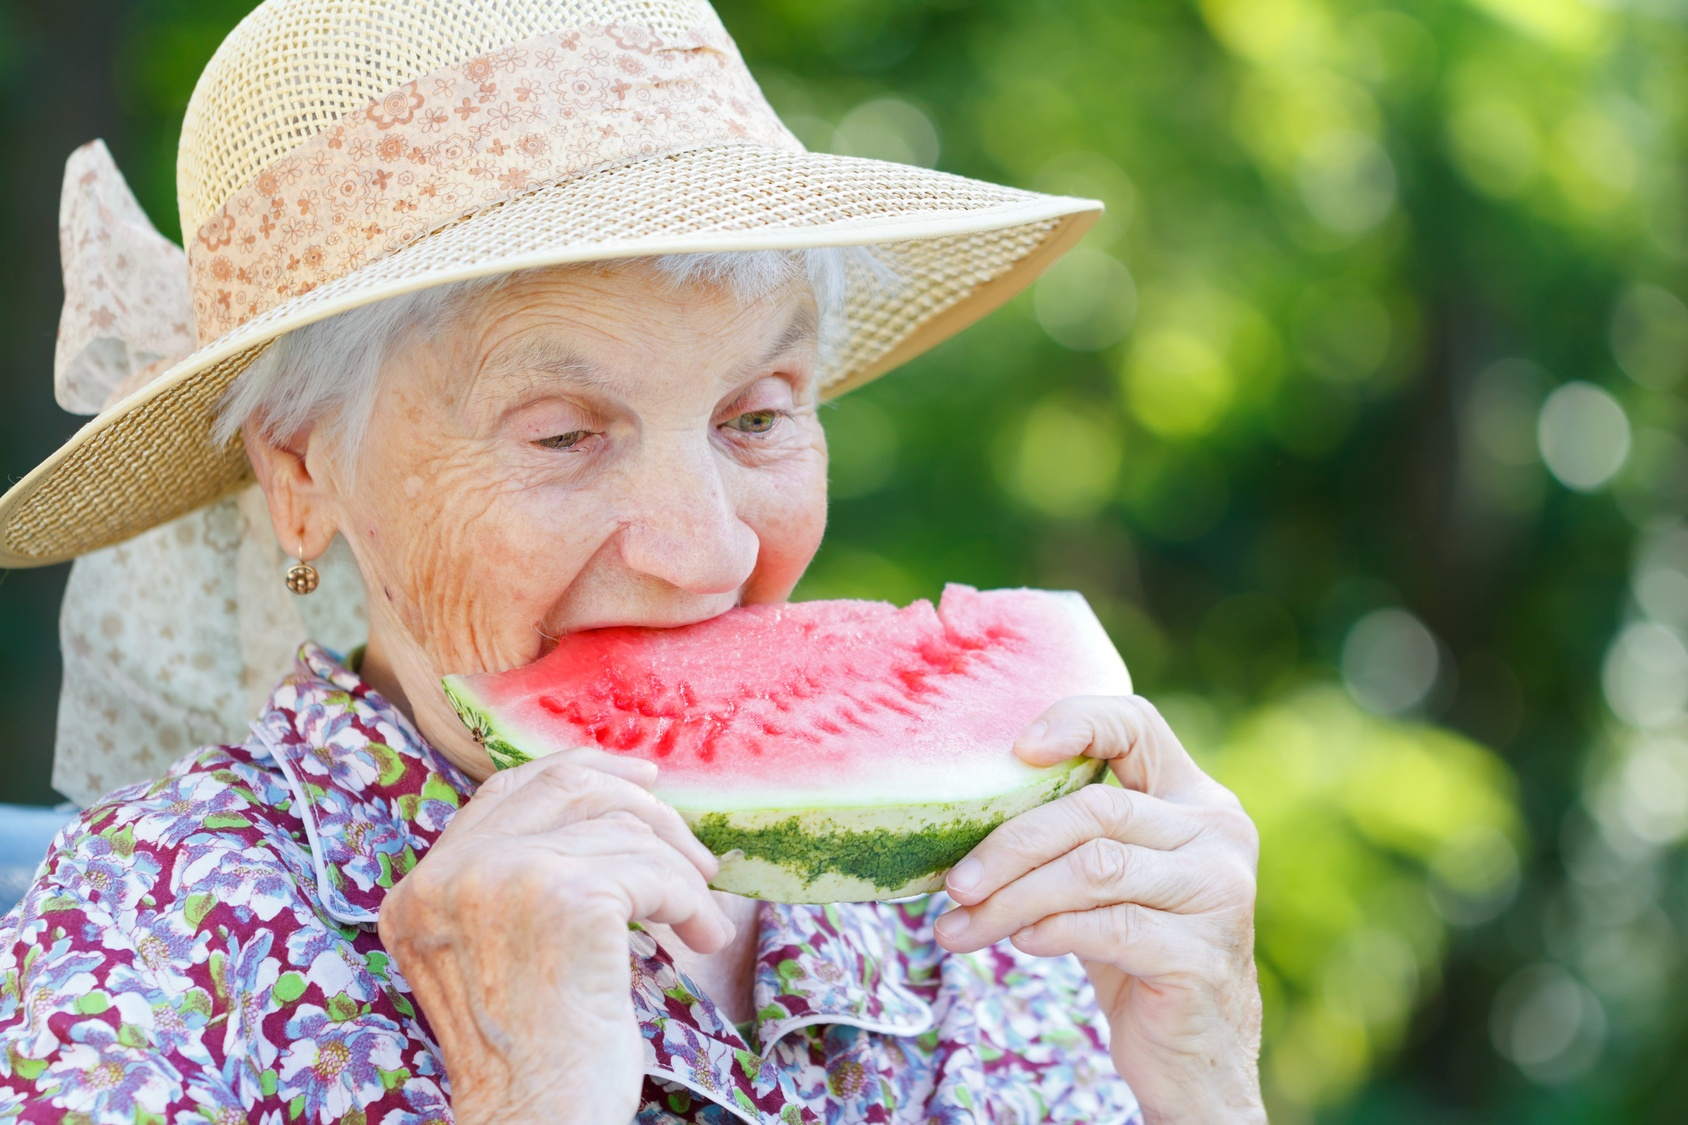 elderly-woman-eating-watermelon